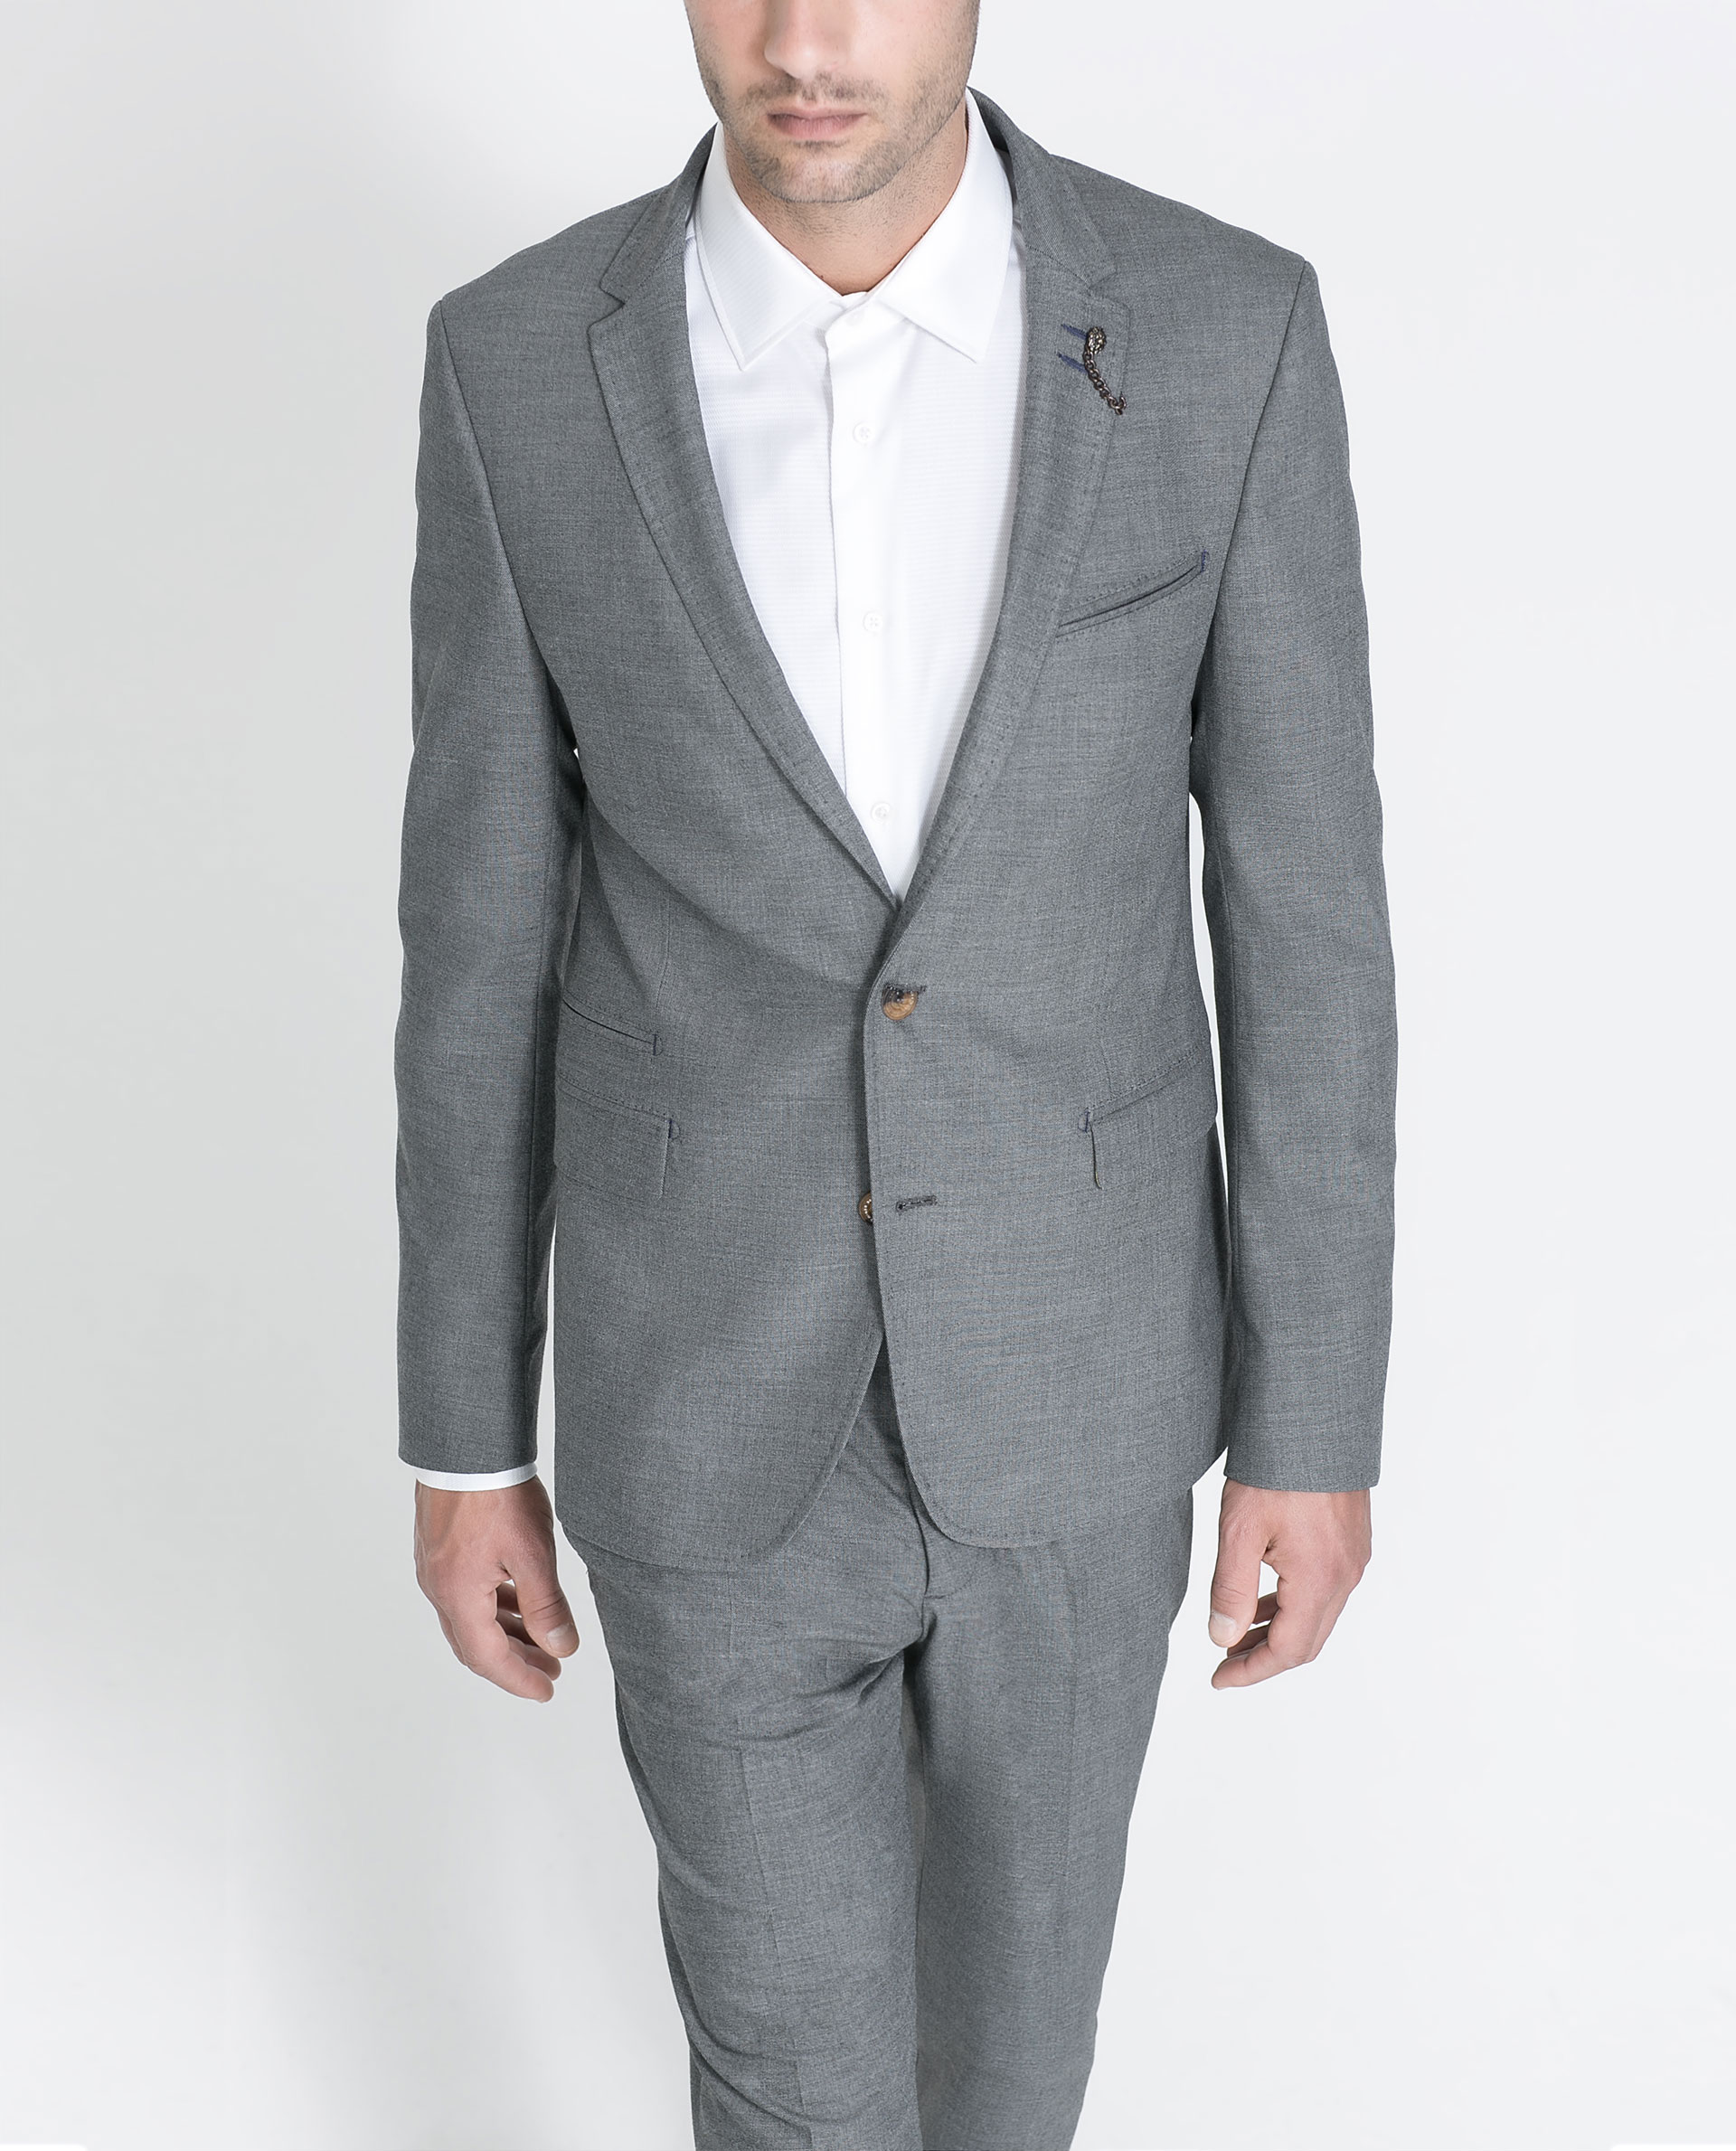 Zara Formal Blazer In Gray For Men | Lyst